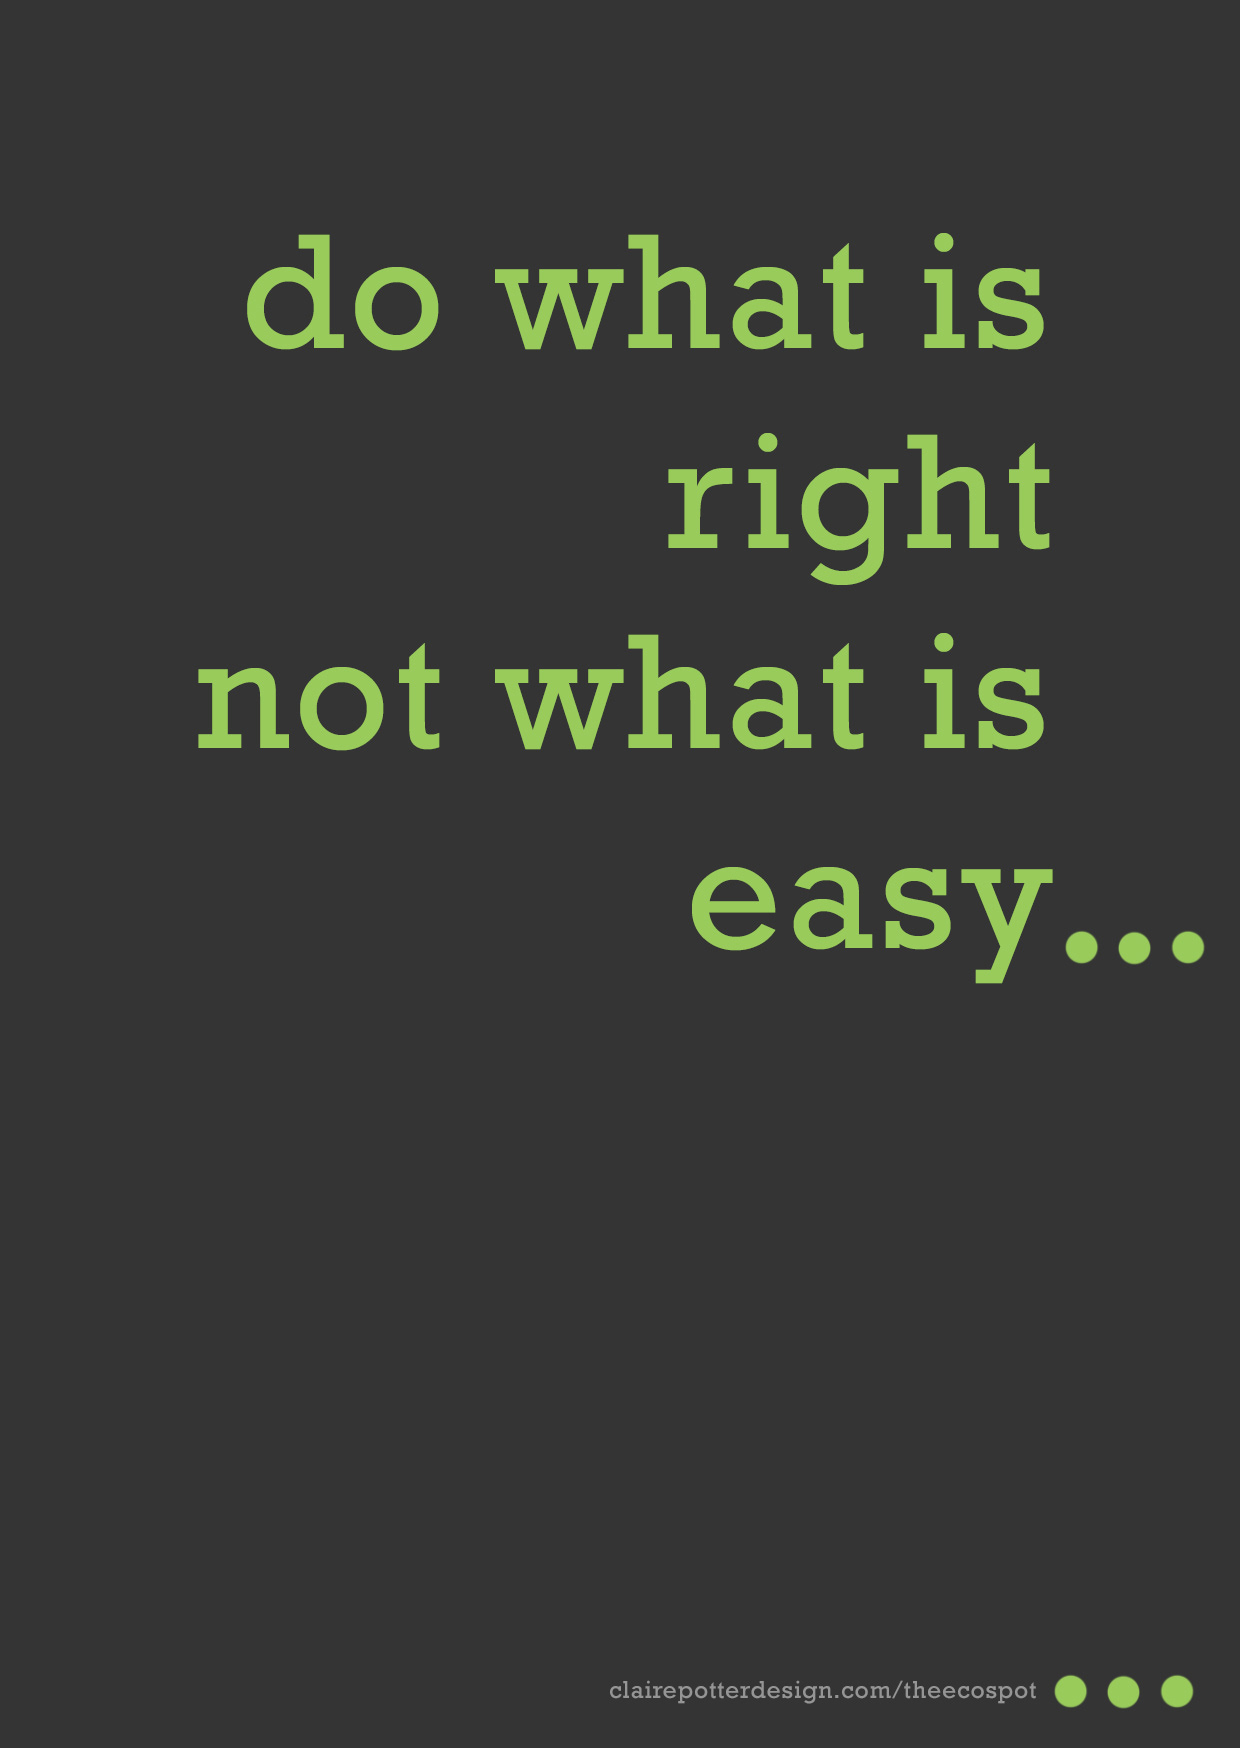 Do What Is Right Not What Is Easy Uk Eco Design Blog The Ecospot